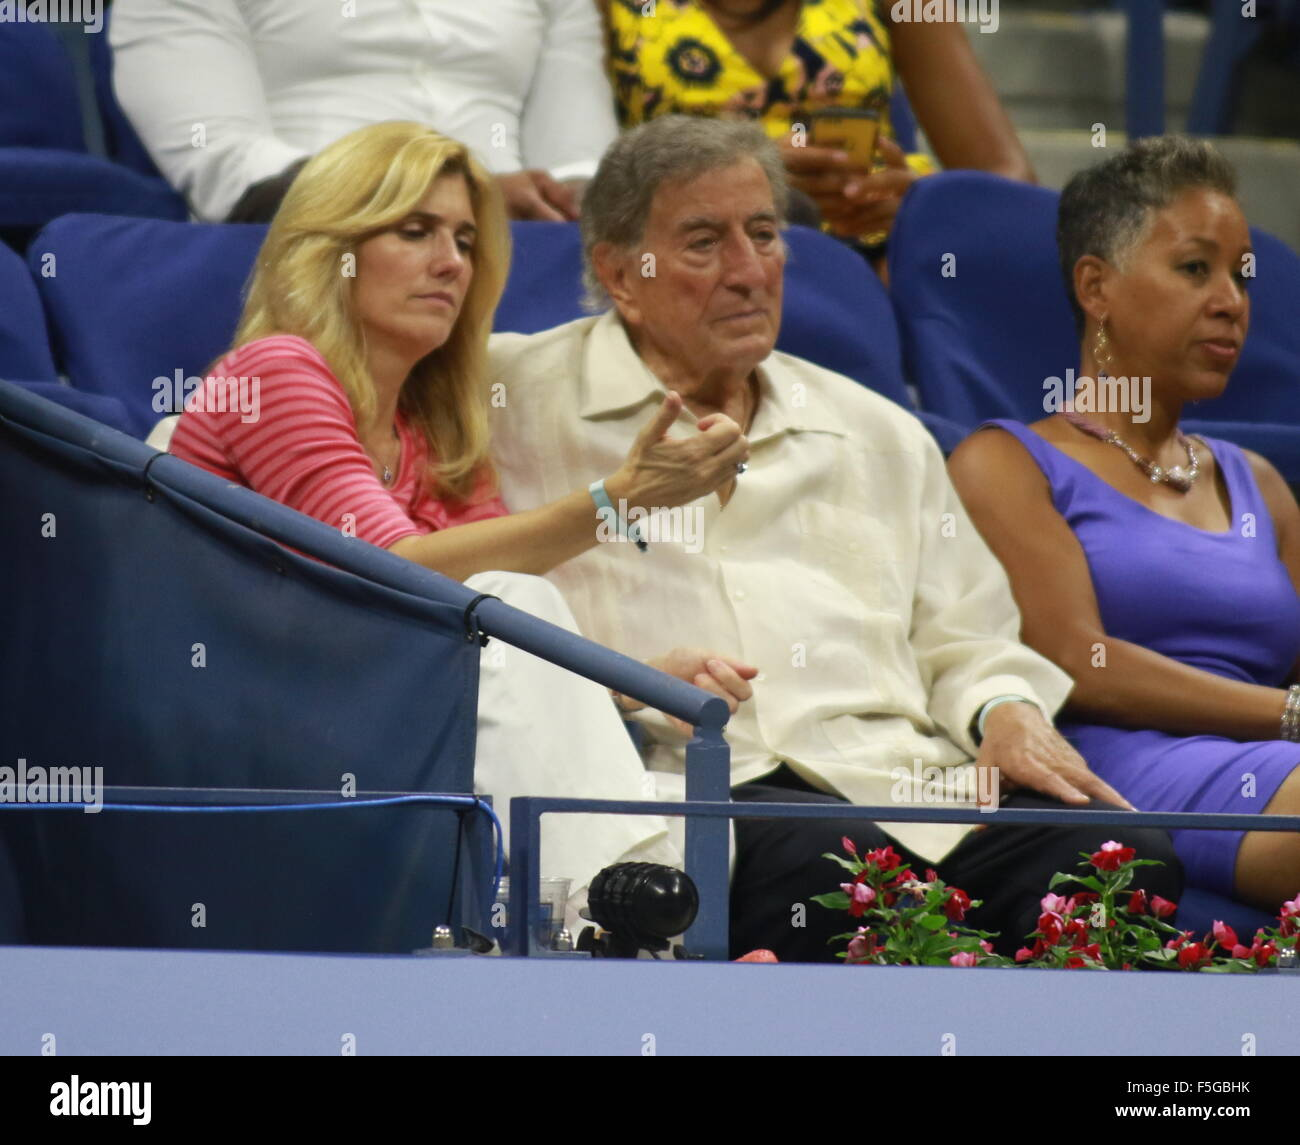 2015 US Open Tennis at the USTA Billie Jean King National Tennis Center - Day 3  Featuring: Tony Bennett, Susan - Stock Image